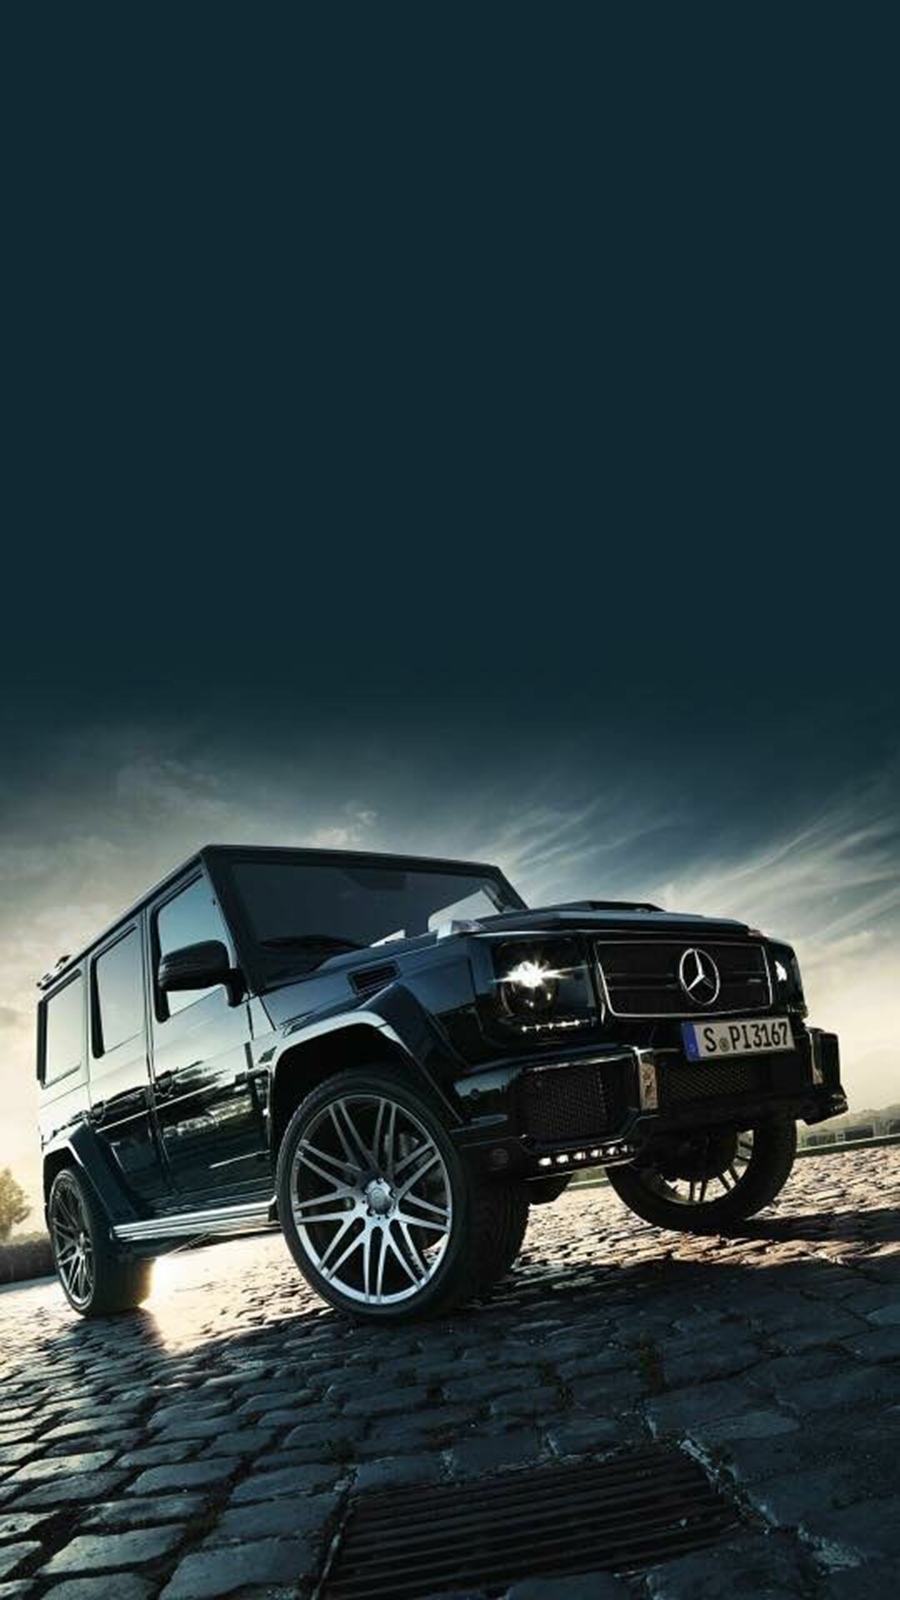 Mercedes 4×4 Super Car Wallpapers for Mobile Free Download – Best Wallpapers